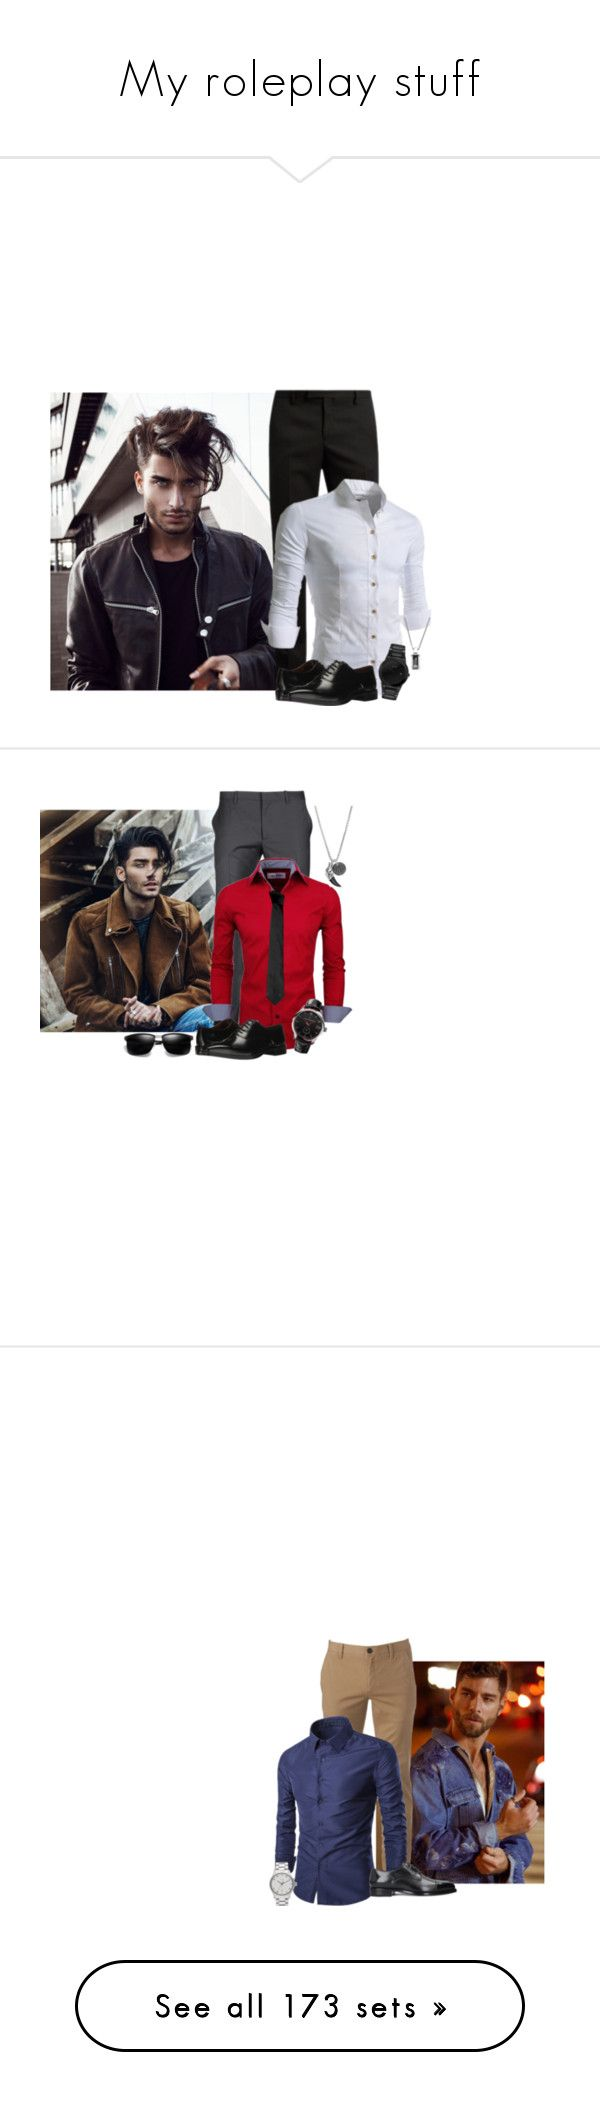 """""""My roleplay stuff"""" by nika-love ❤ liked on Polyvore featuring Yves Saint Laurent, Massimo Matteo, Citizen, Baccarat, men's fashion, menswear, NikaPRP, D&G, Versace and Carl F. Bucherer"""